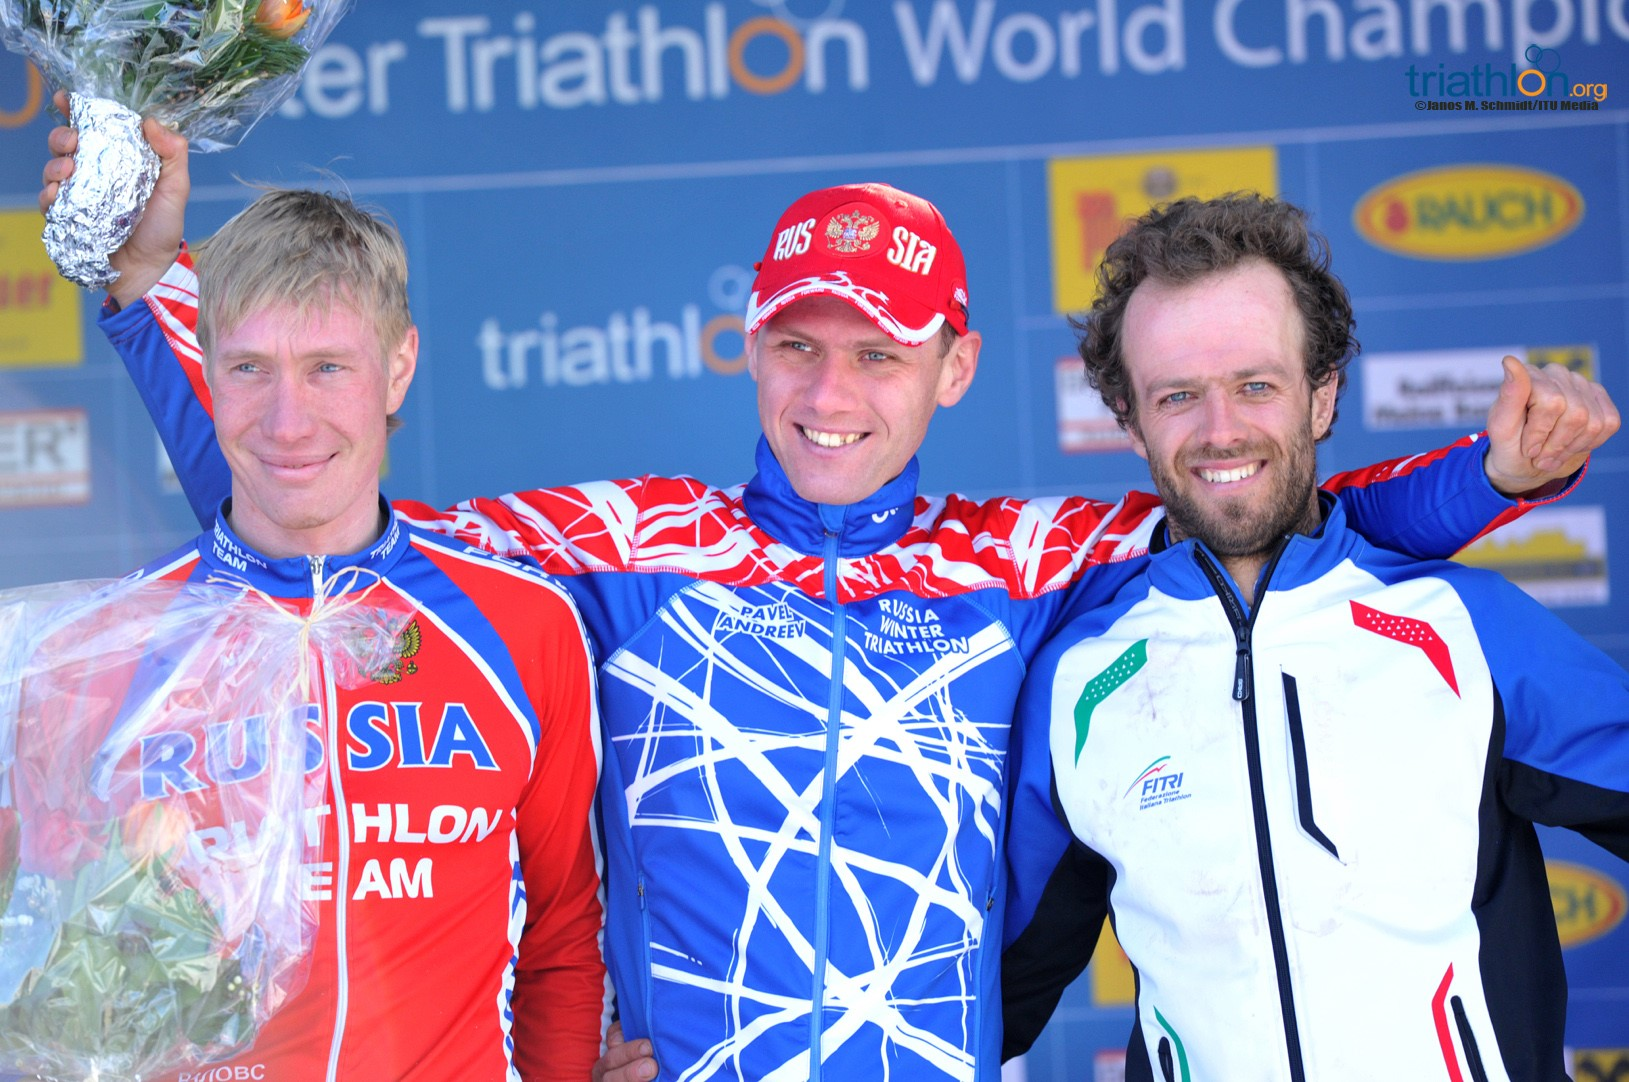 ITU Winter Triathlon World Championship Men's Podium   www.DirtTRI.com